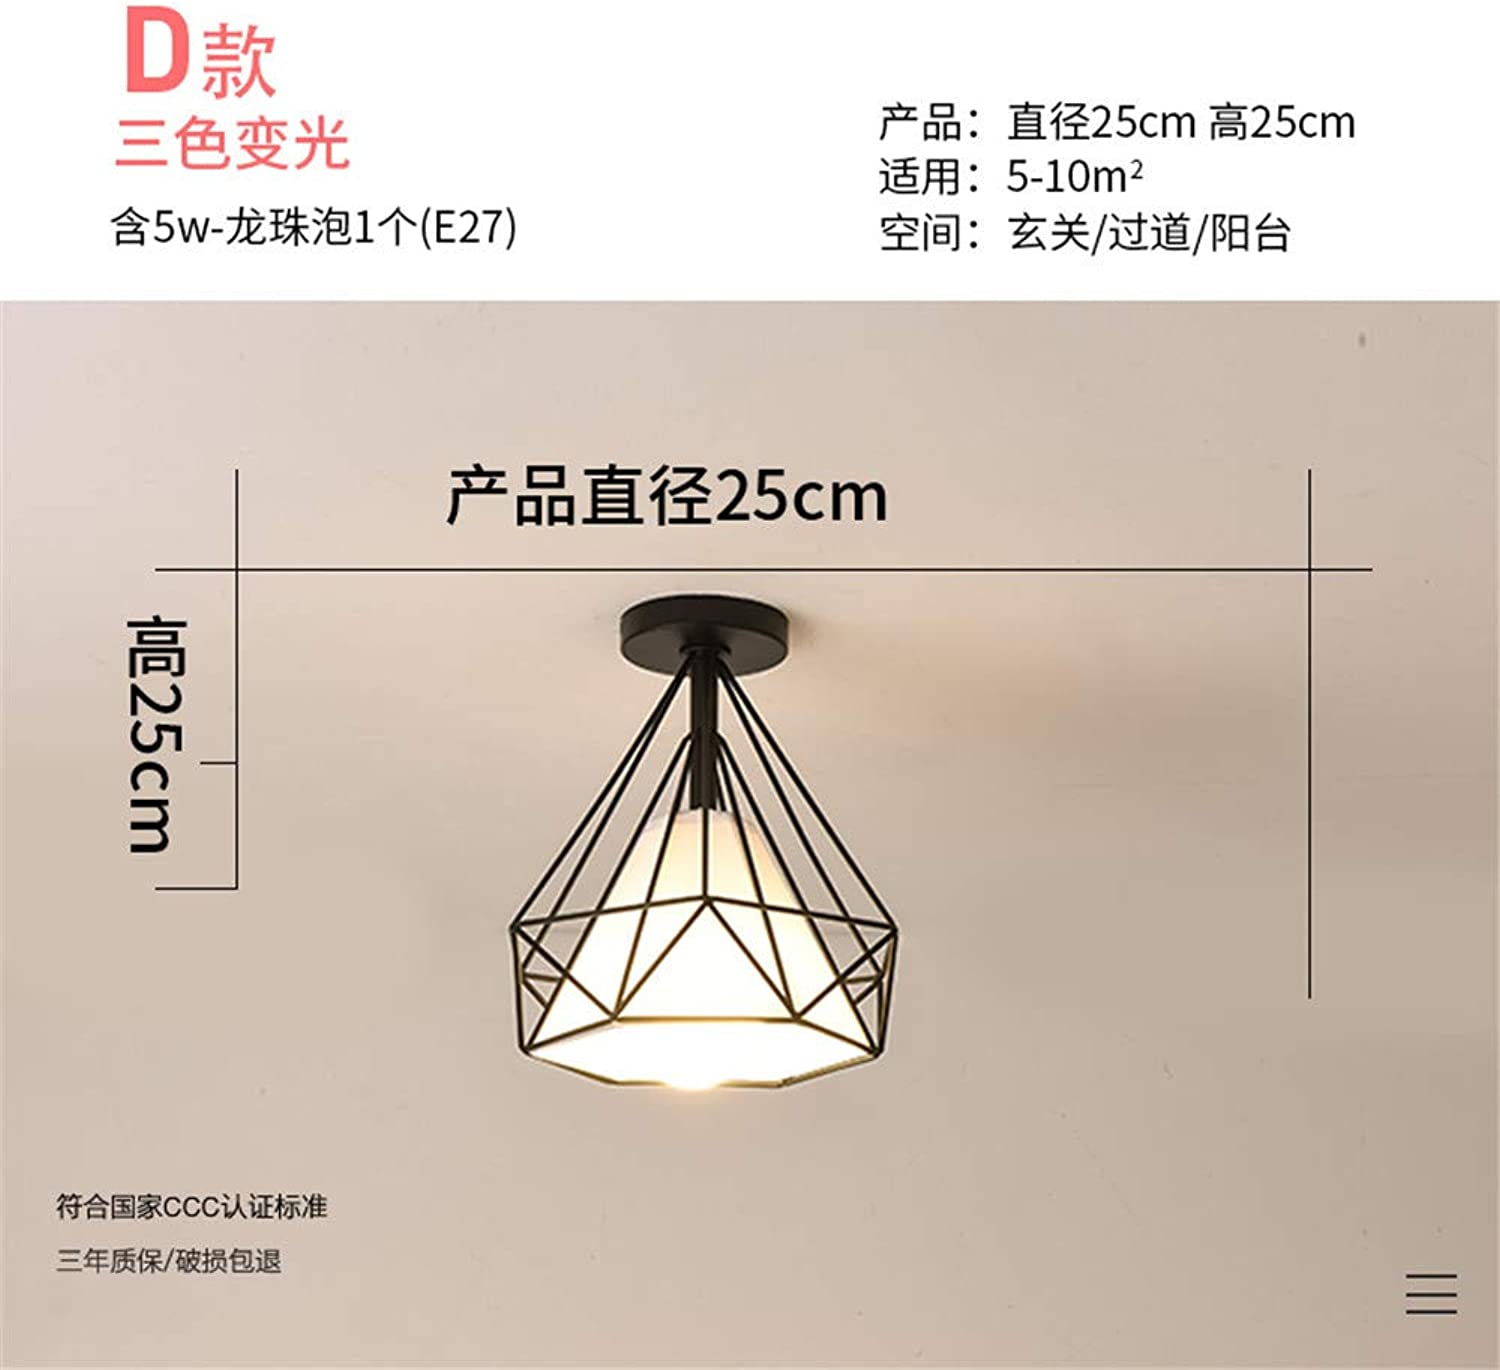 Zhouzhou666 Aisle Lights Led Ceiling Lamps Balcony Lights Corridor Lights Porch Lights Cloakroom Lamps, D Models of Three-Farbe Light, 25Cm